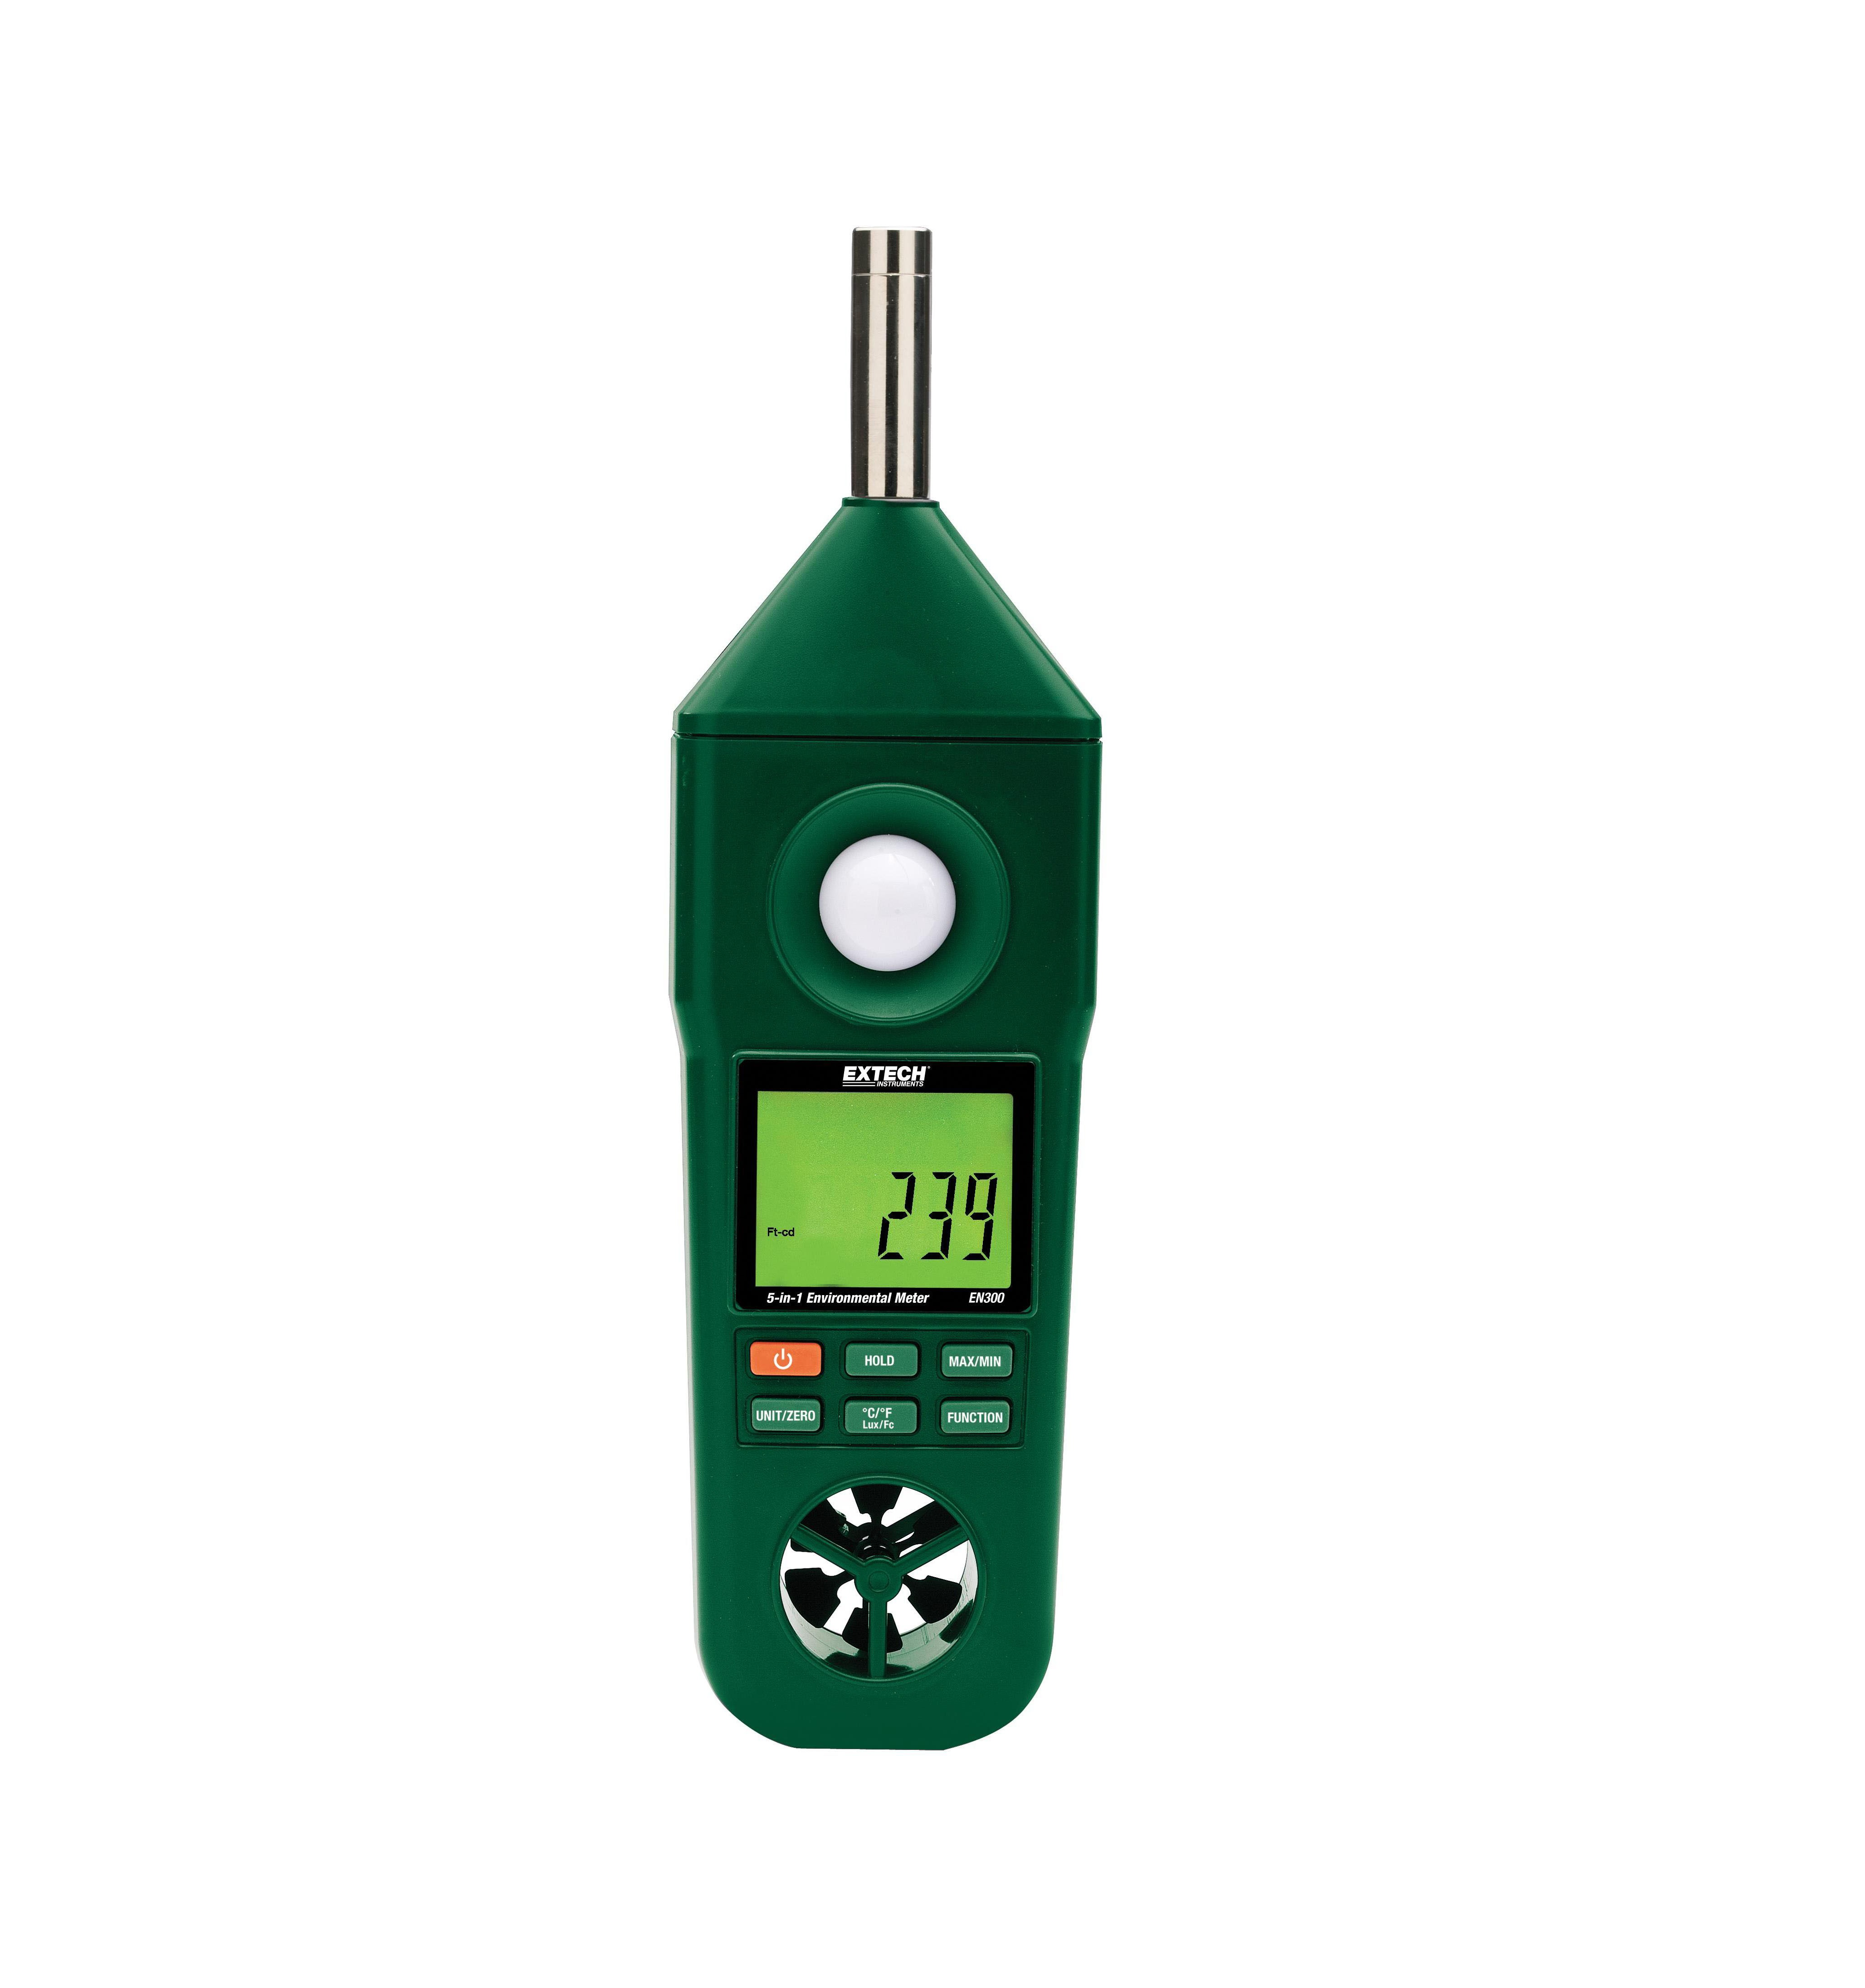 EXTECH EN300 - Hygro-Thermo-Anemometer-Light-Sound Meter